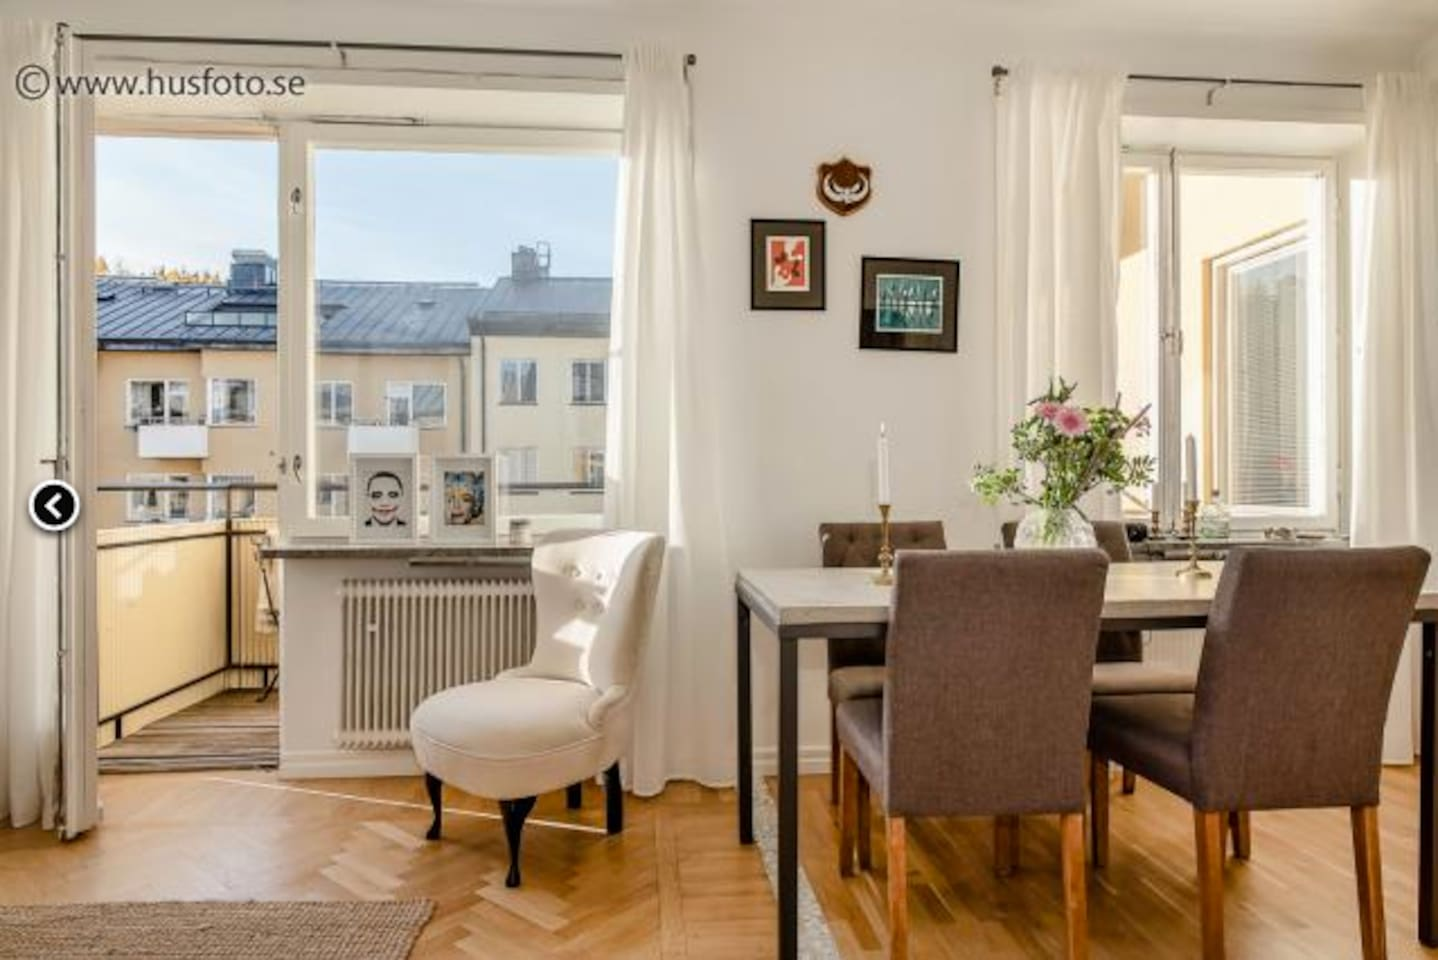 2 room Östermalm apartments for rent in stockholm stockholms län